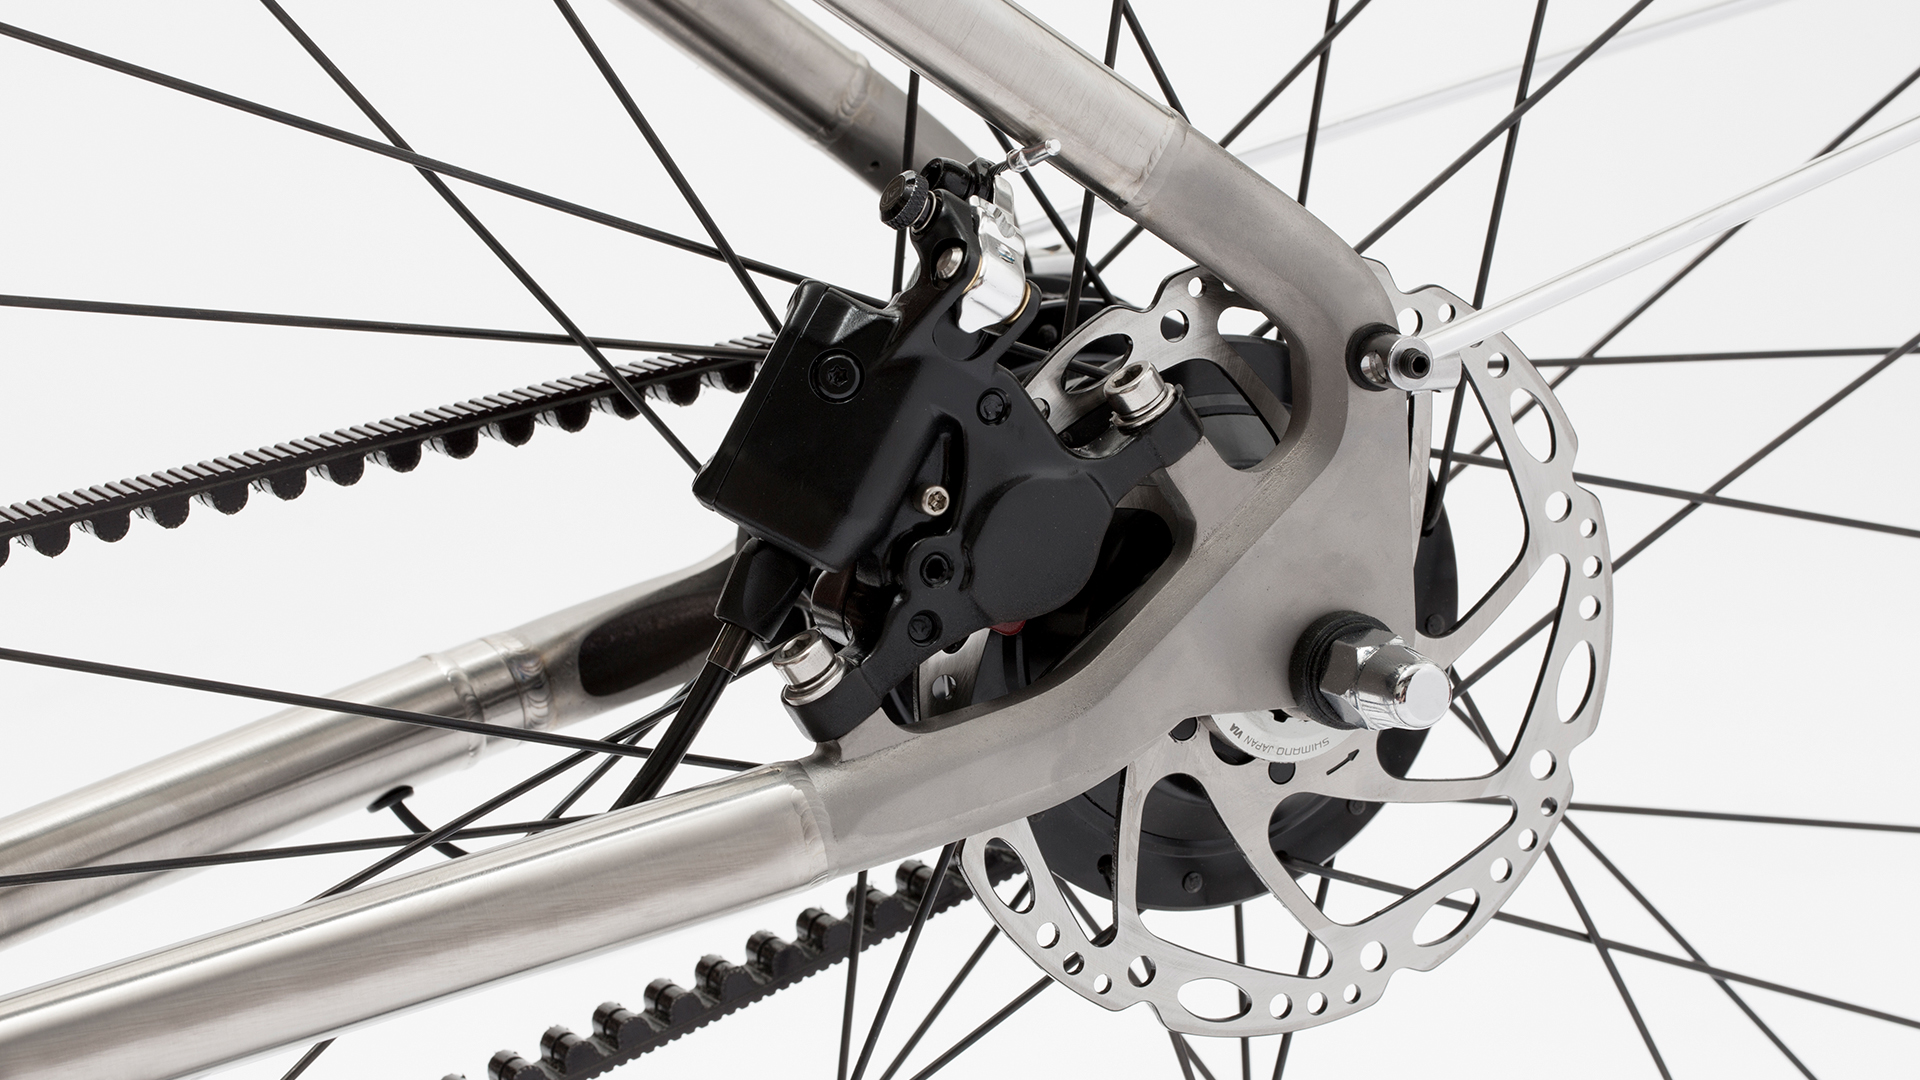 industry-ti-cycles-solid-bike-product-concept-3